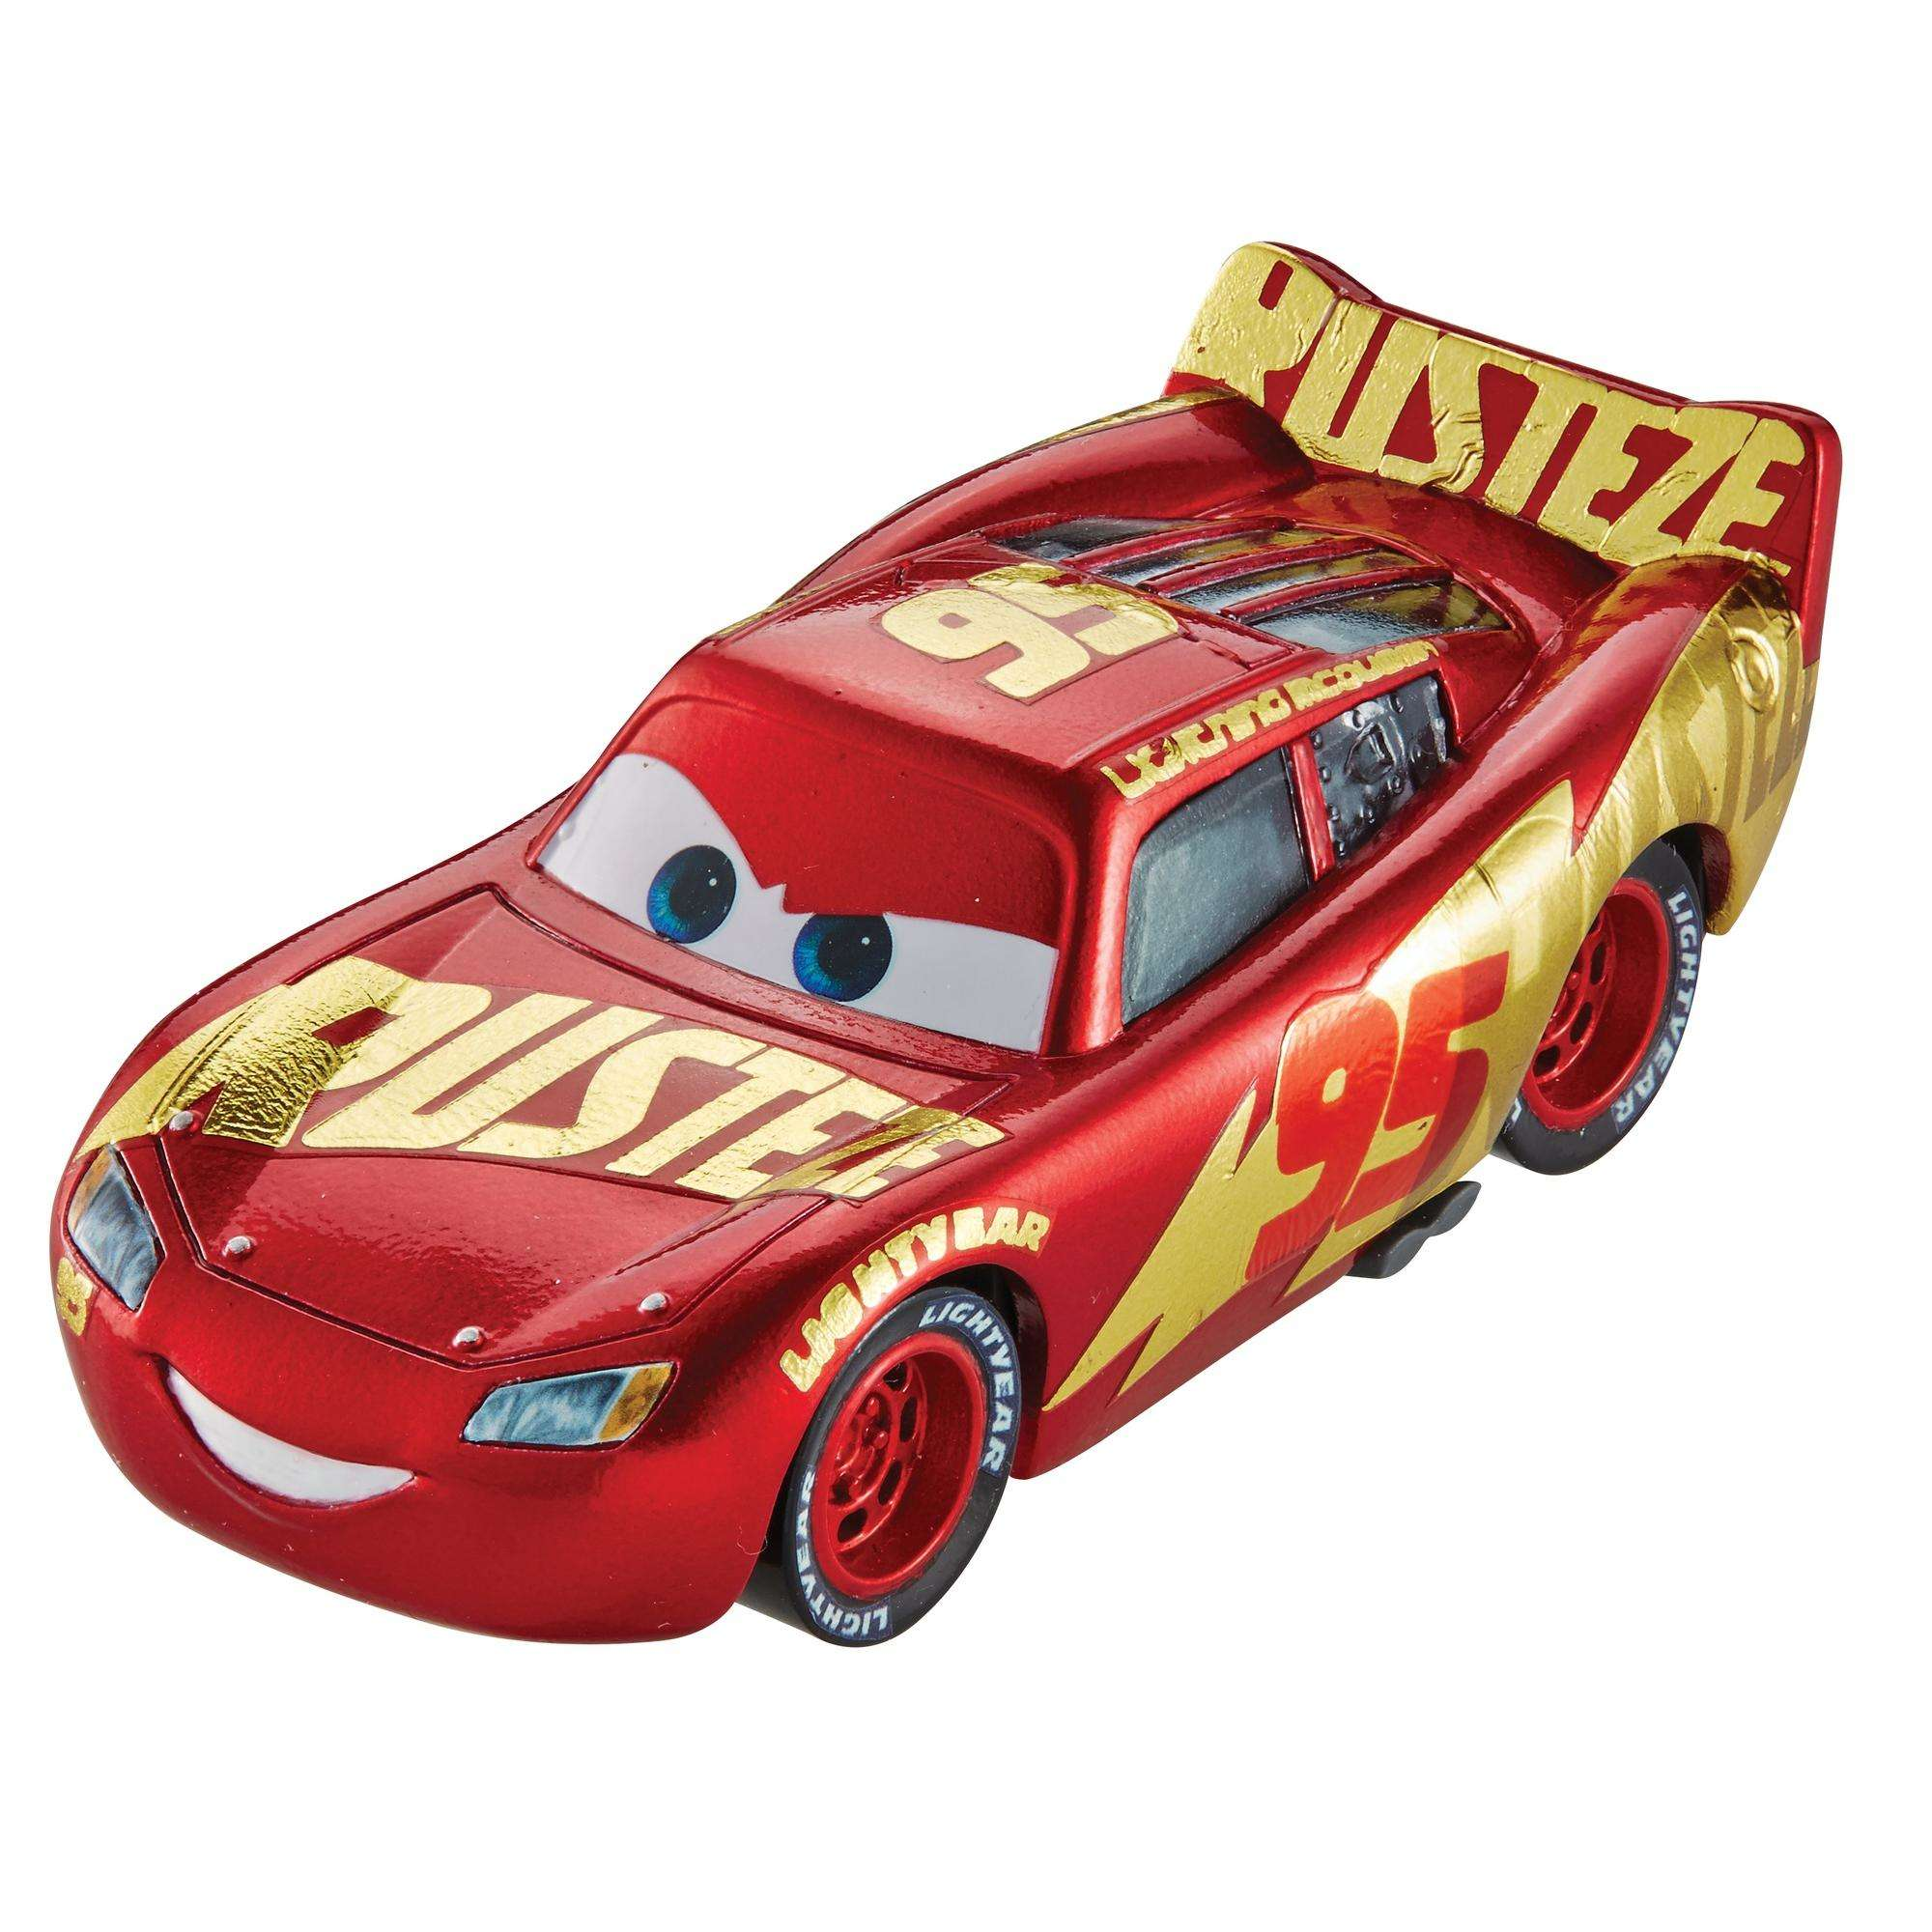 Disney/Pixar Cars 3 Rust-Eze Racing Center Lightning McQueen Die-Cast Vehicle  sc 1 st  Walmart & Disney/Pixar Cars 3 Rust-Eze Racing Center Lightning McQueen Die ...